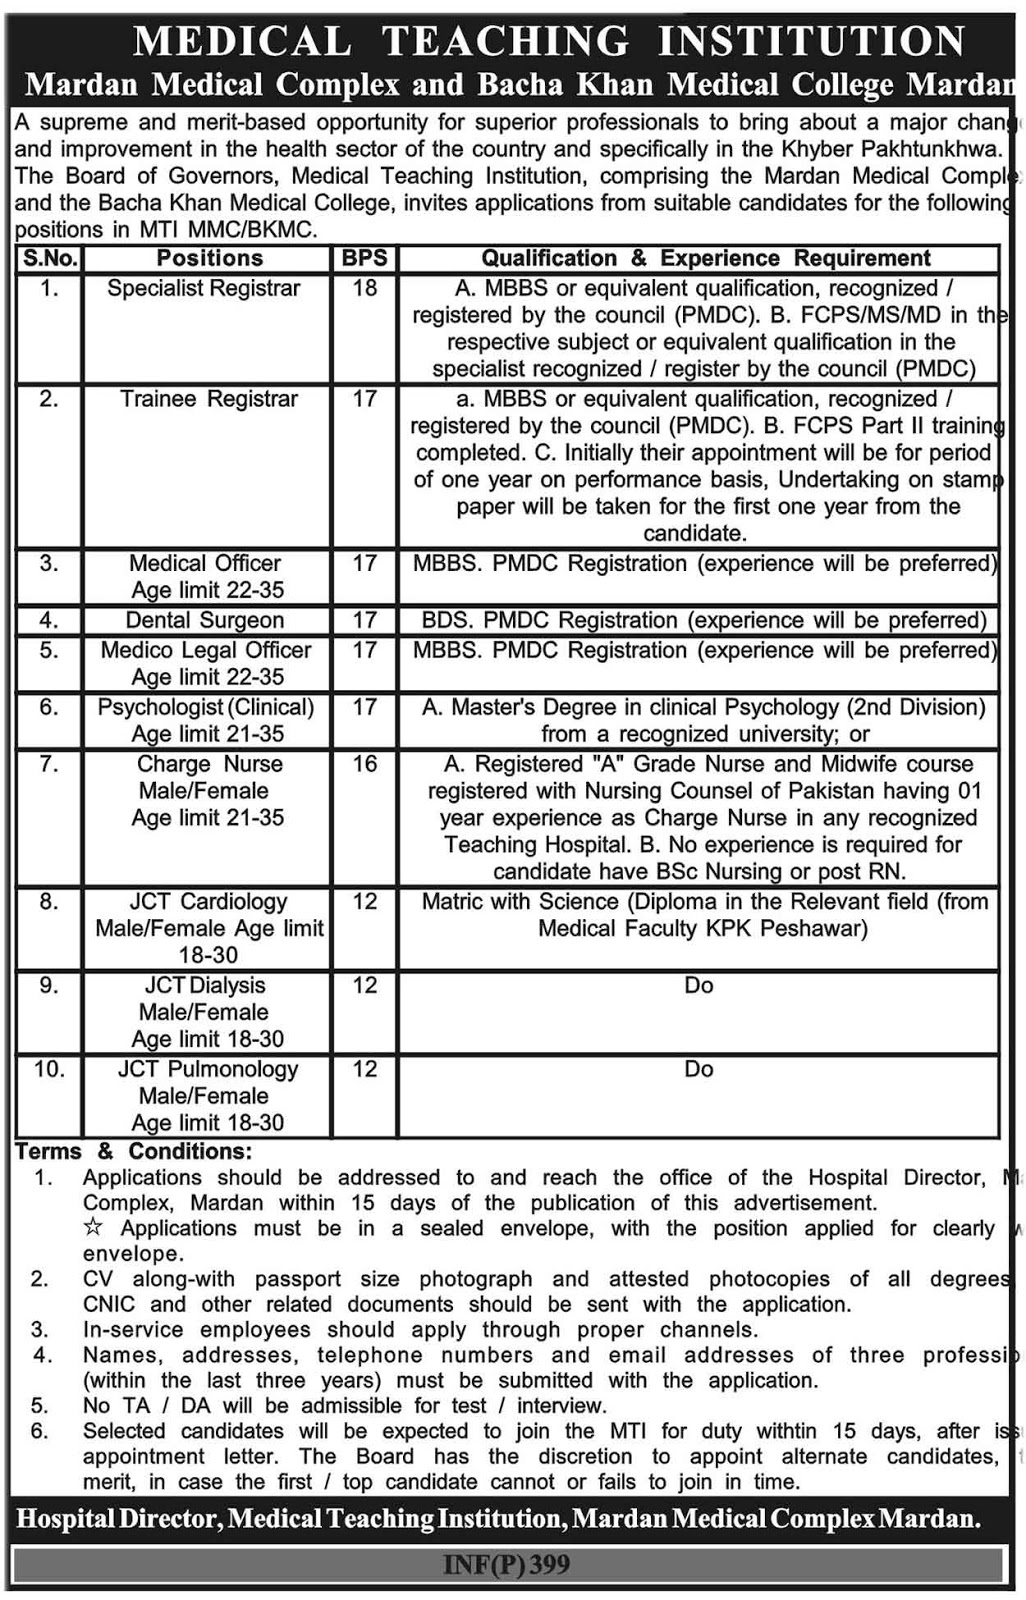 Mardan Medical Teaching Institution Jobs in KPK